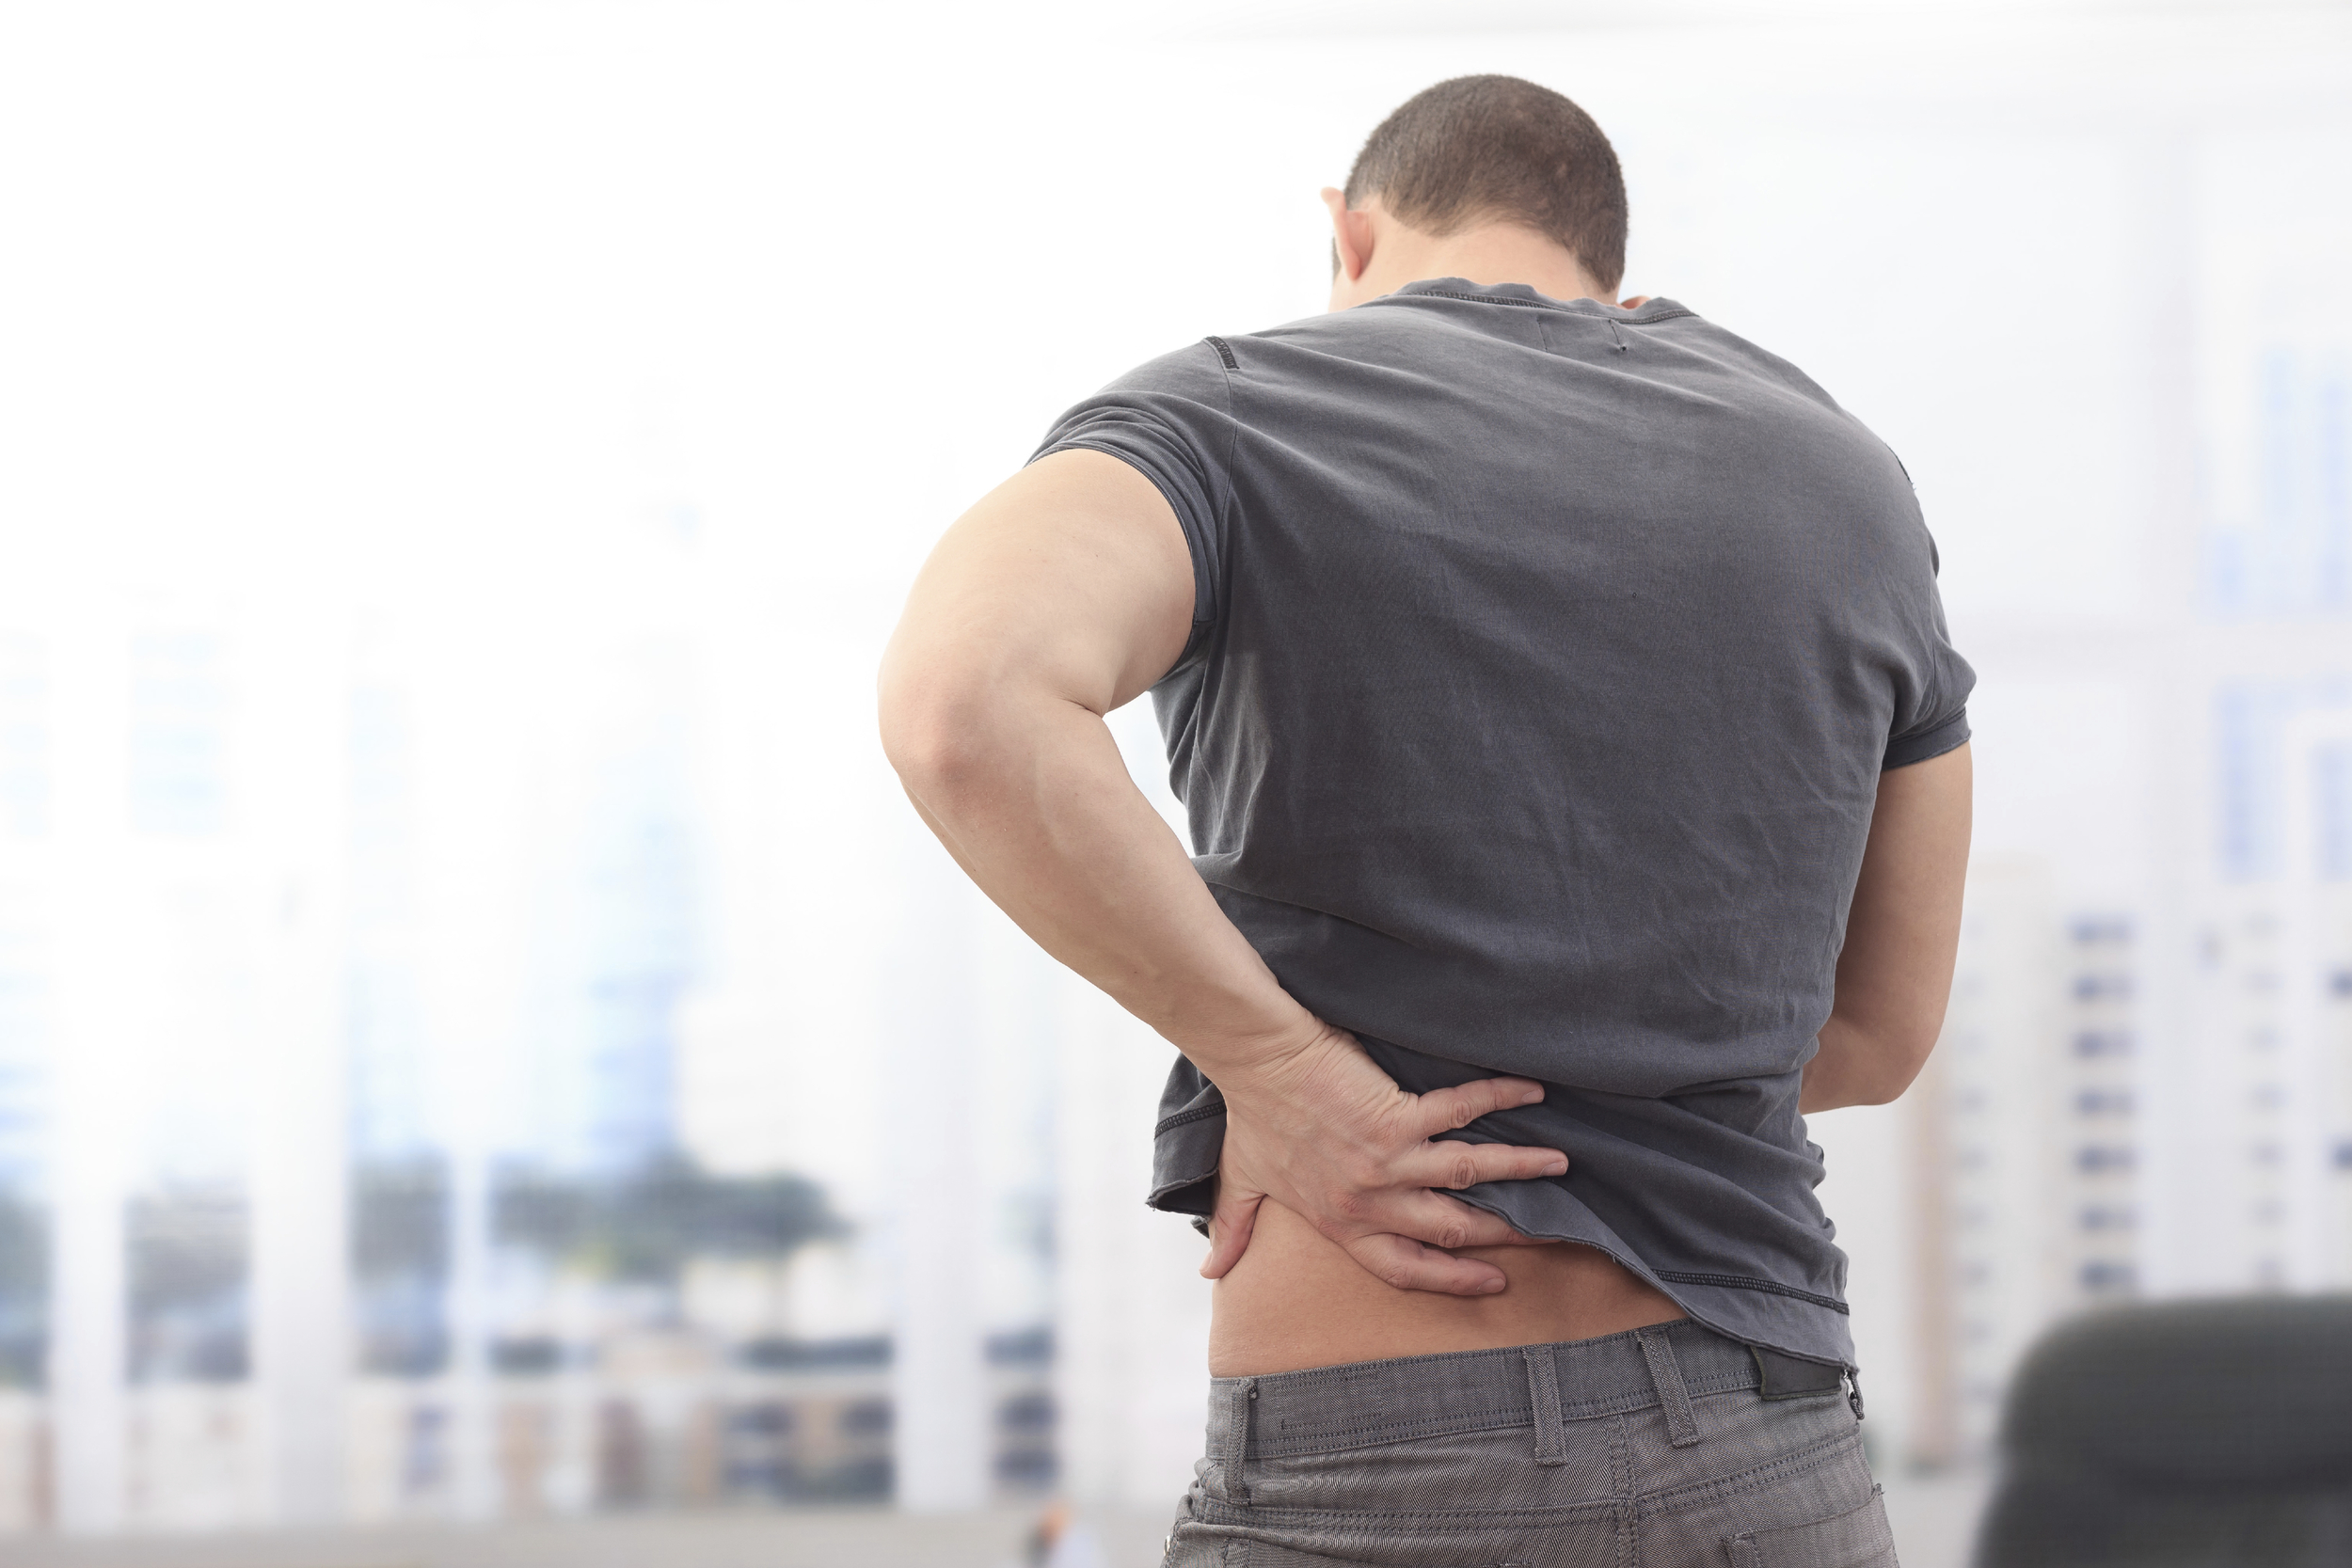 http://www.istockphoto.com/photo/back-pain-37585750